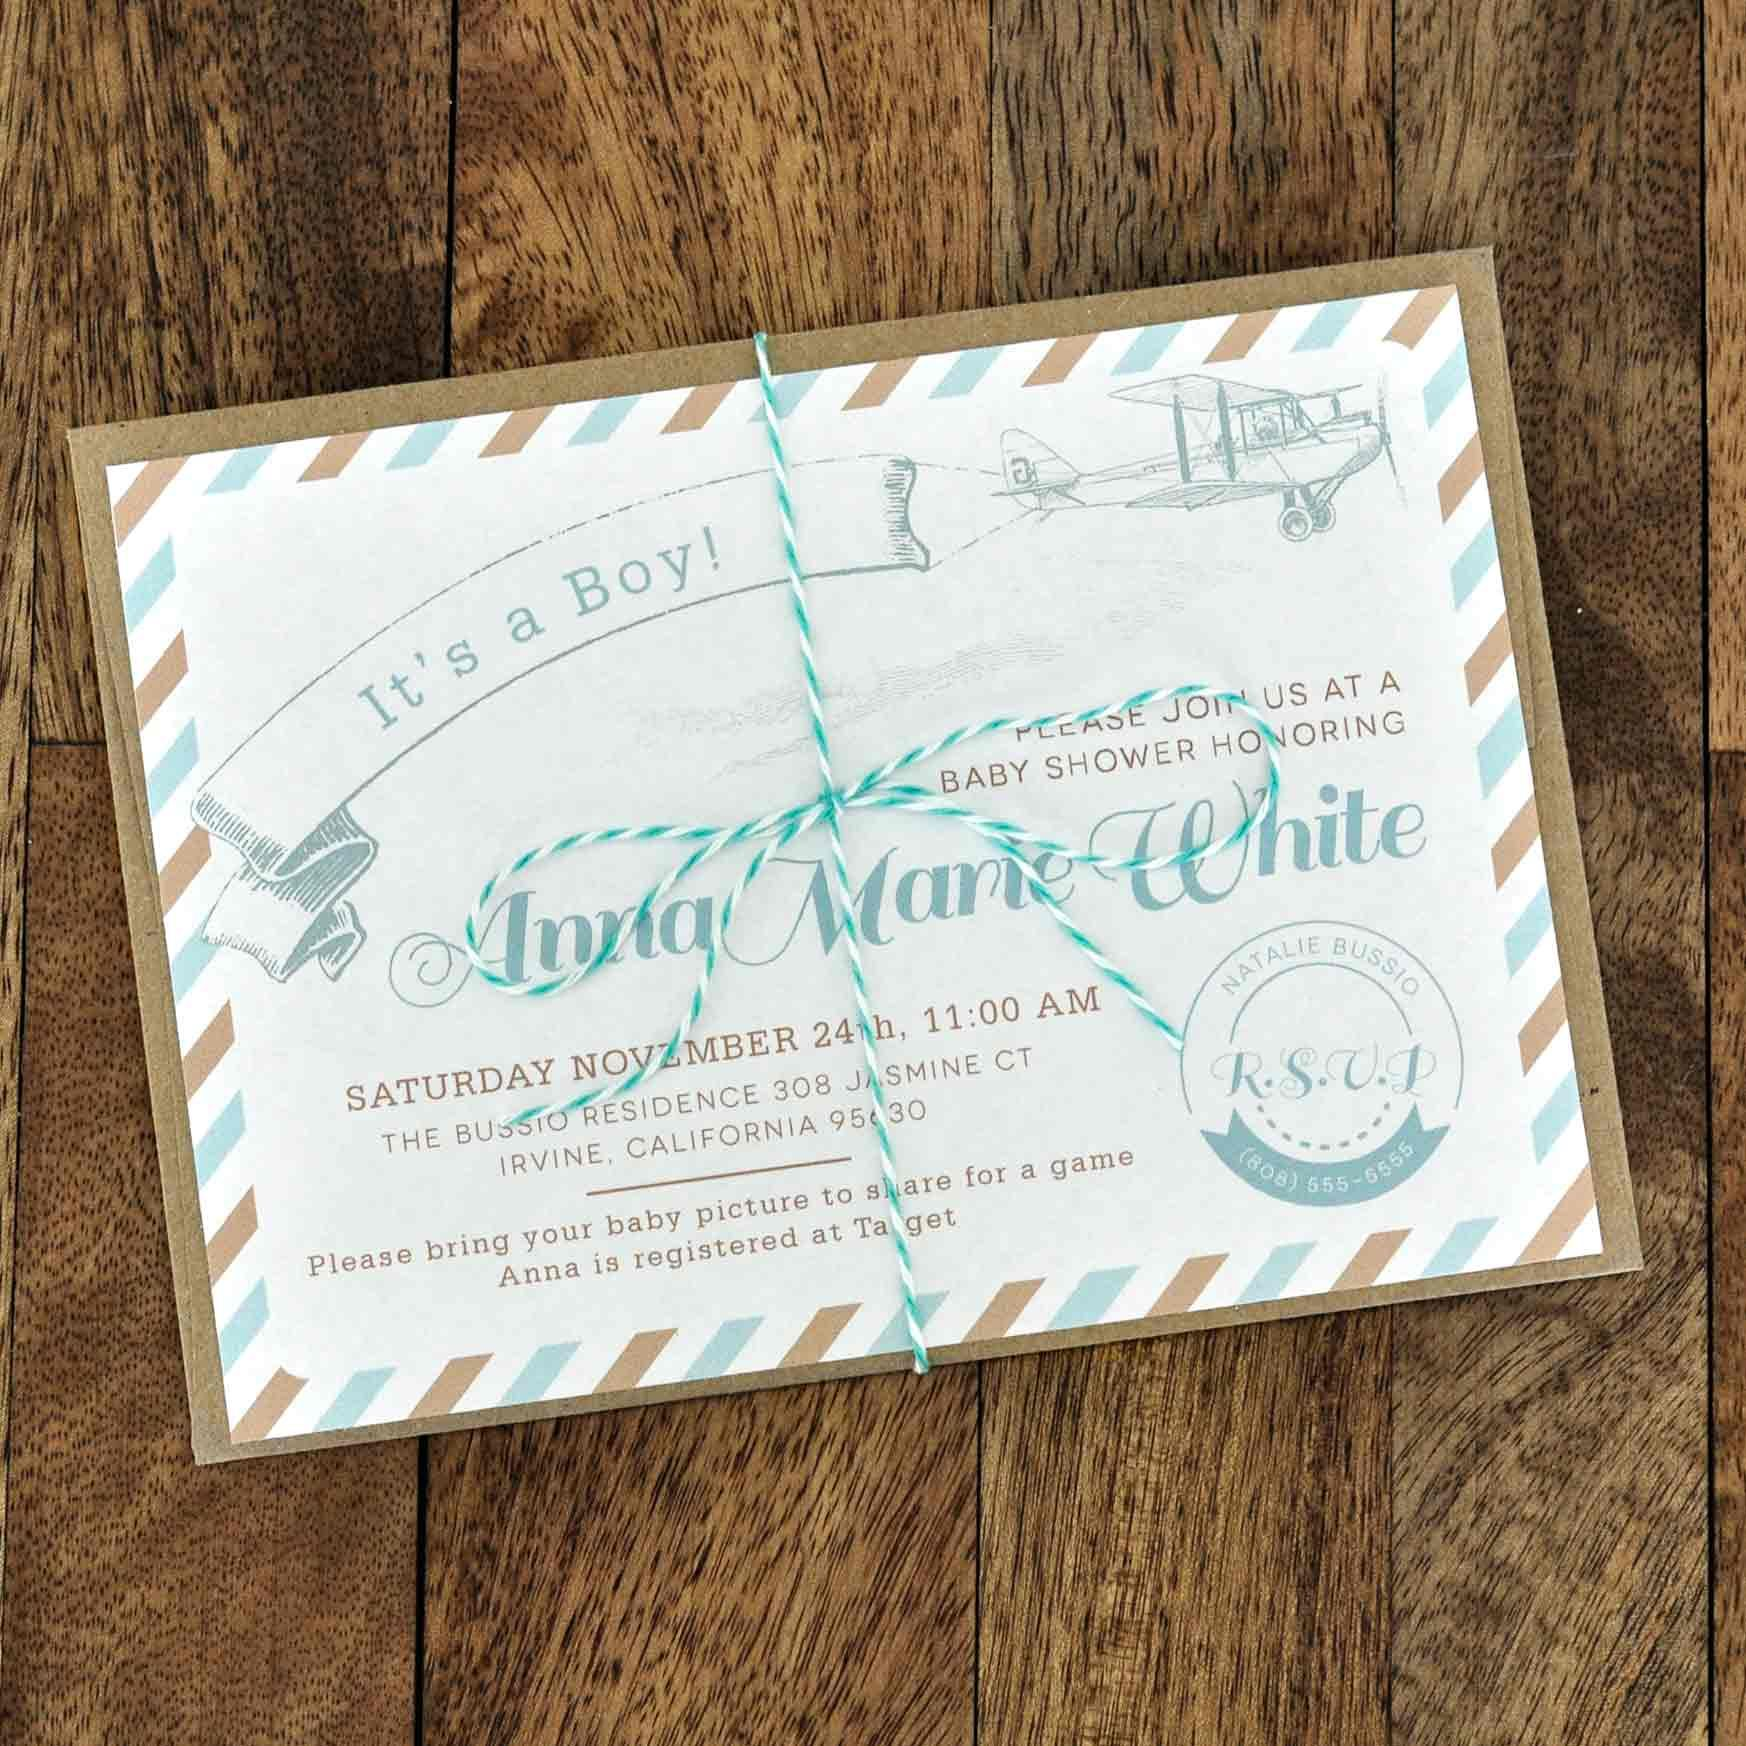 Superior Mail Style With Rope Baby Shower Greeting Card Laid On Harwood Floor As  Well As Baby Shower Invites And Affordable Baby Shower Invitations